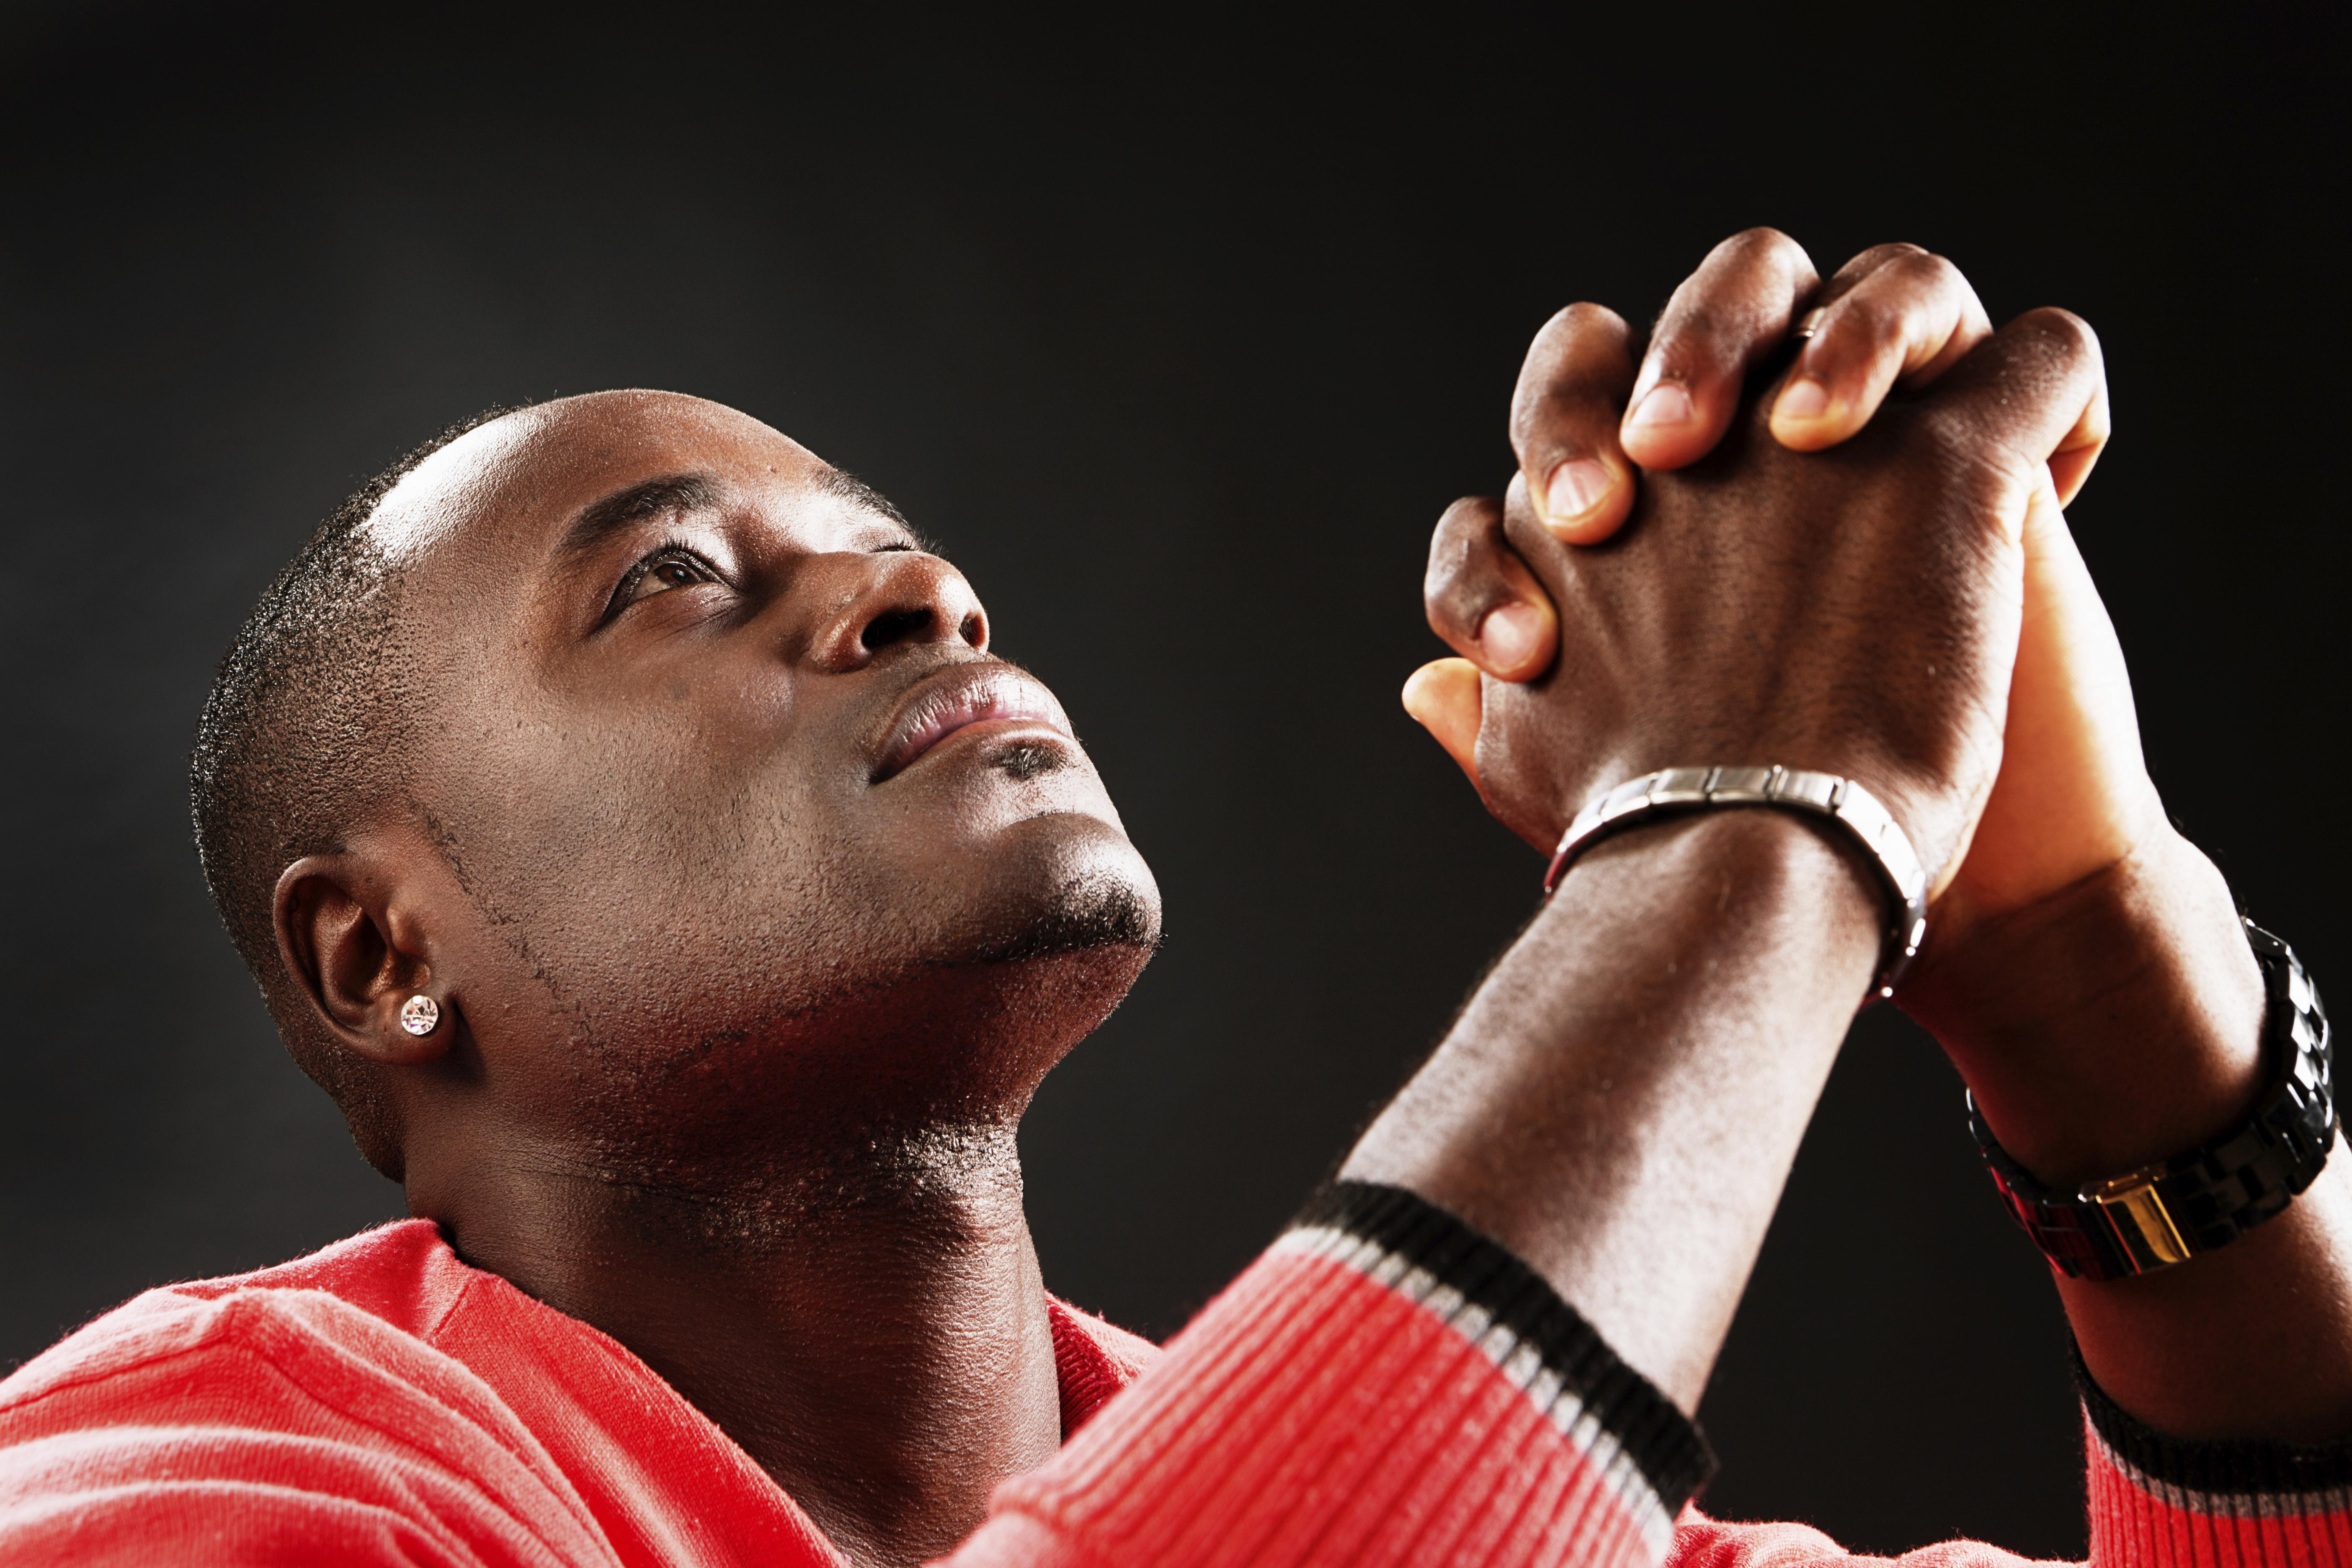 'Young man looks up, hands clasped, praying fervently'